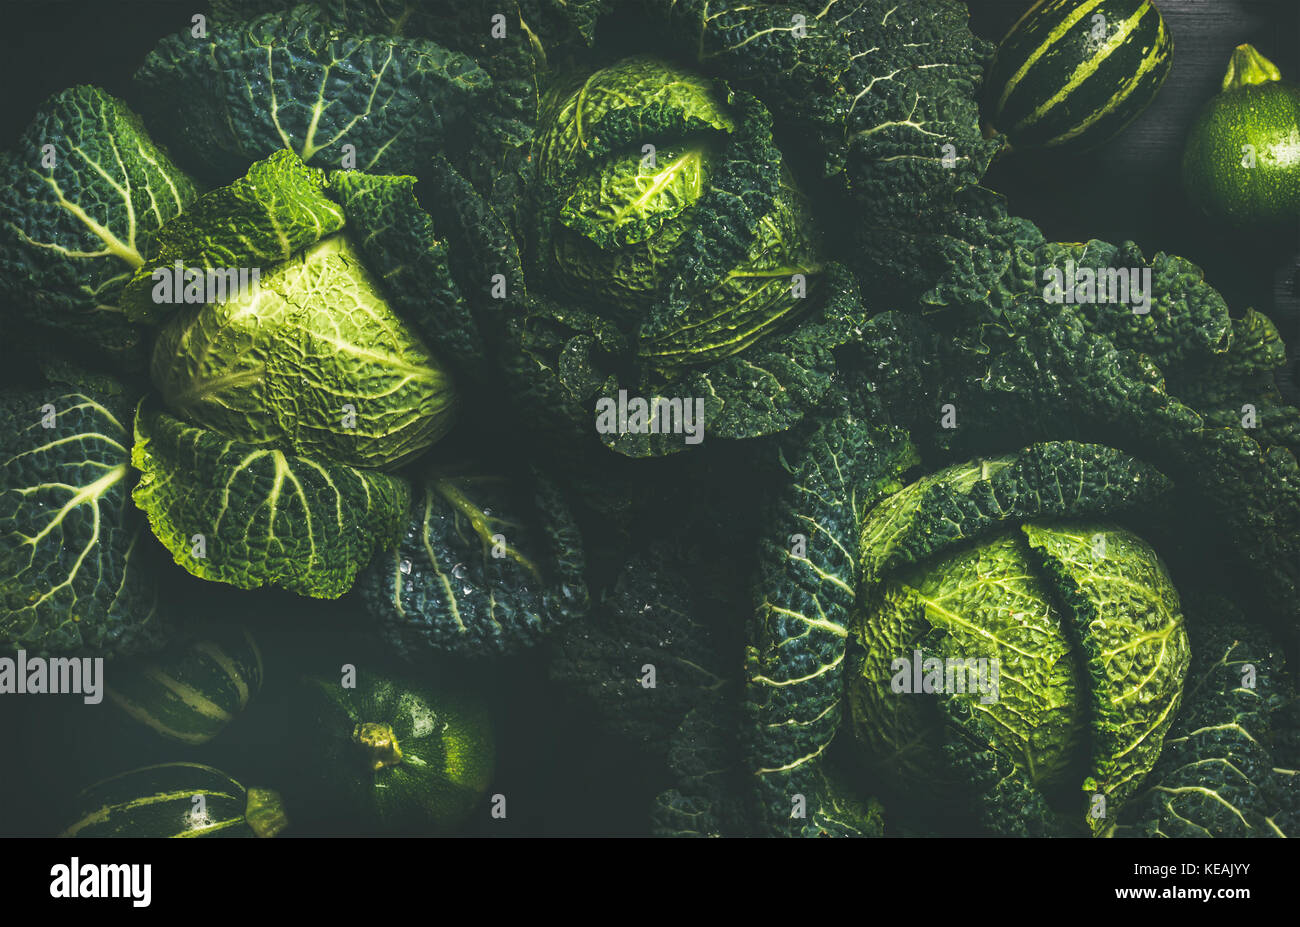 Raw fresh green cabbage texture and background, top view - Stock Image